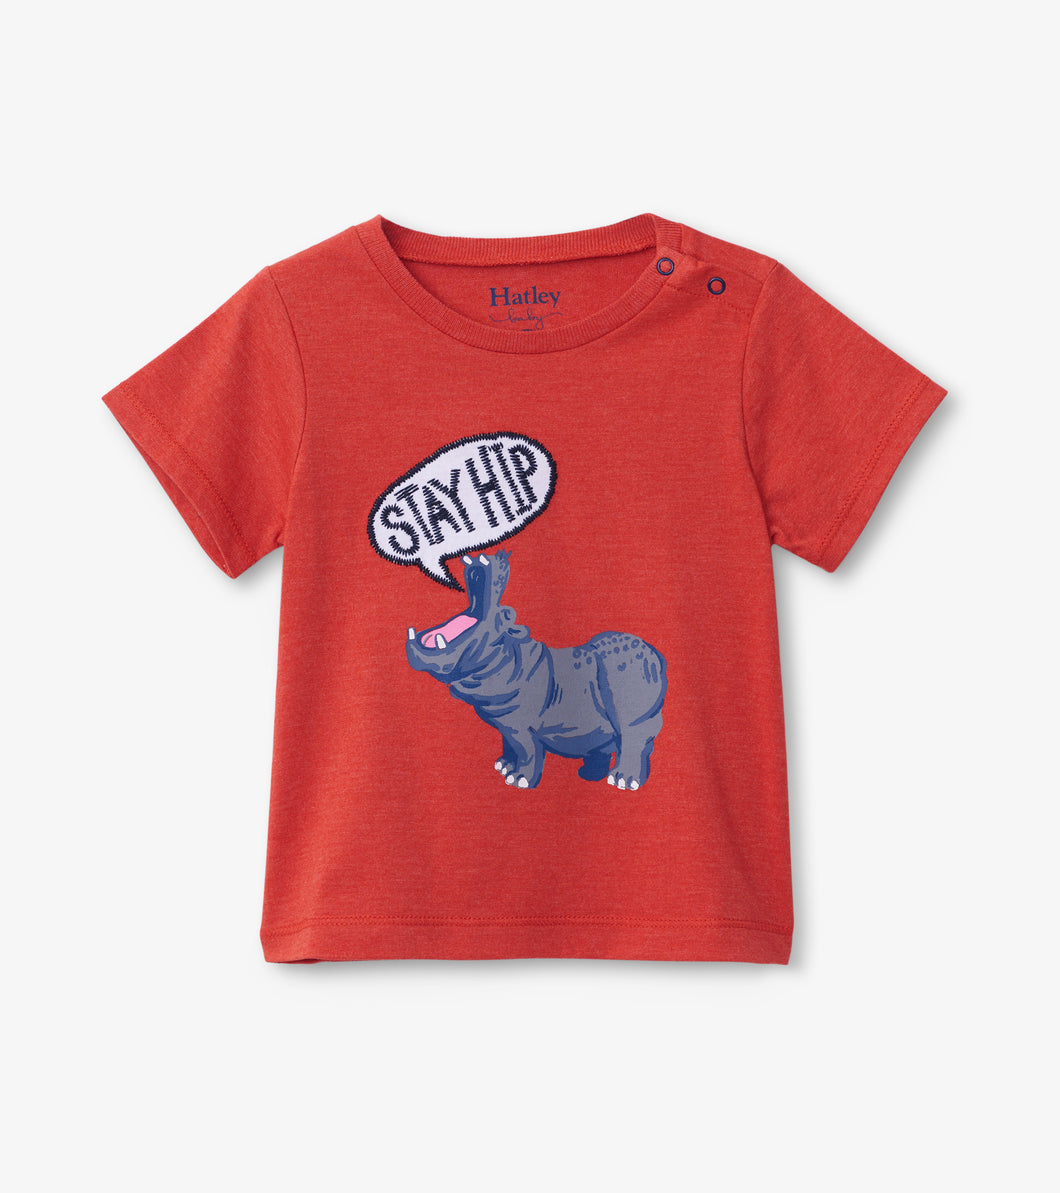 Hatley Graphic Tee - Hip Hippo